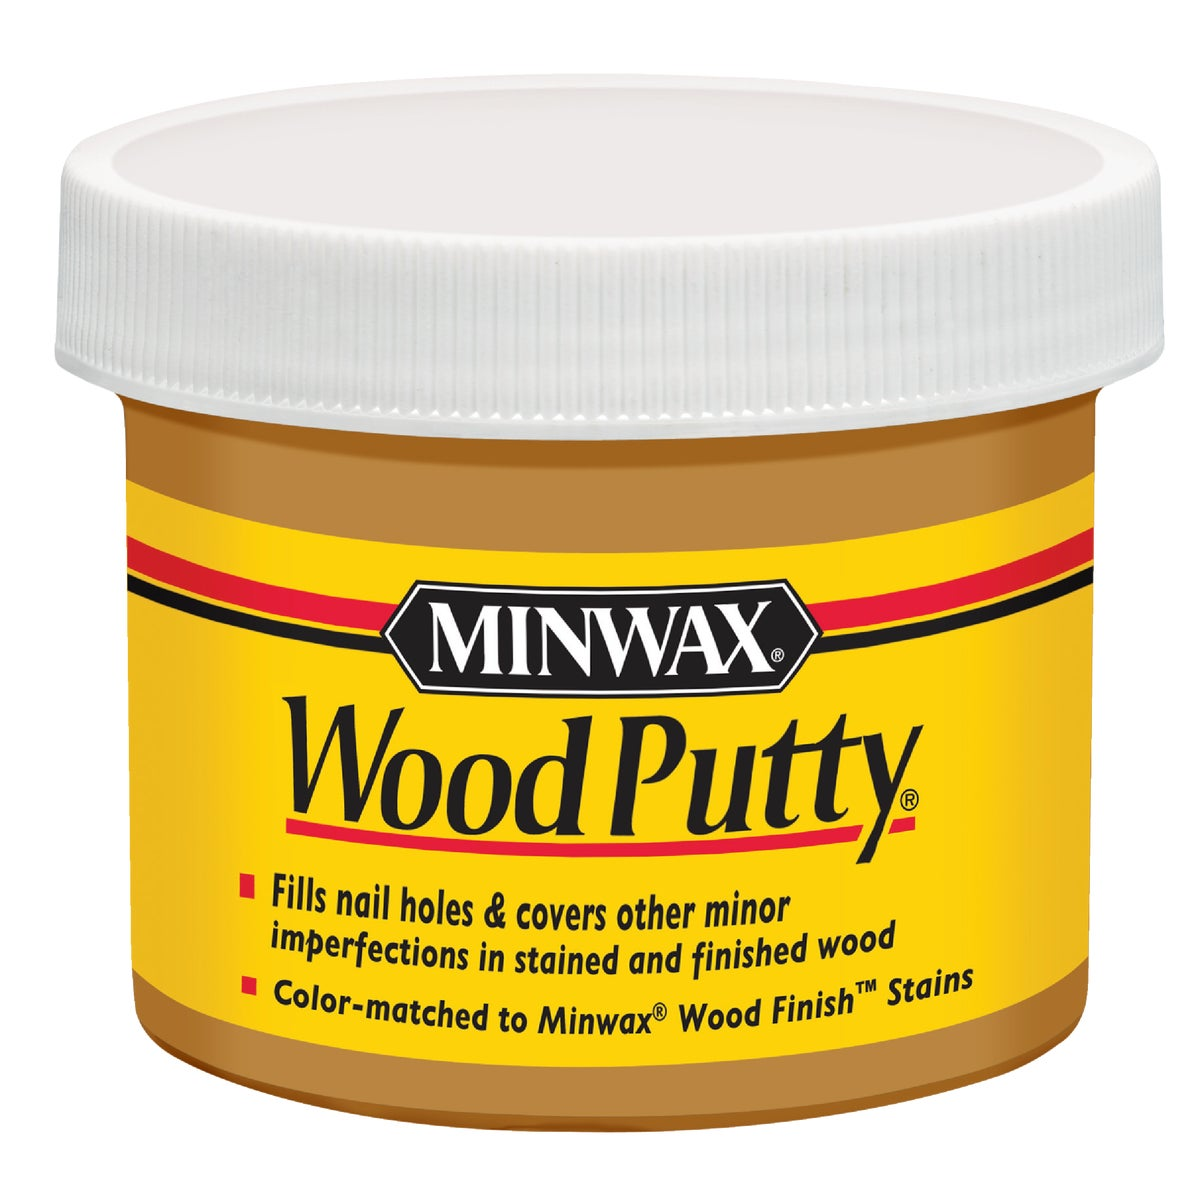 GOLDEN OAK WOOD PUTTY - 13611 by Minwax Company